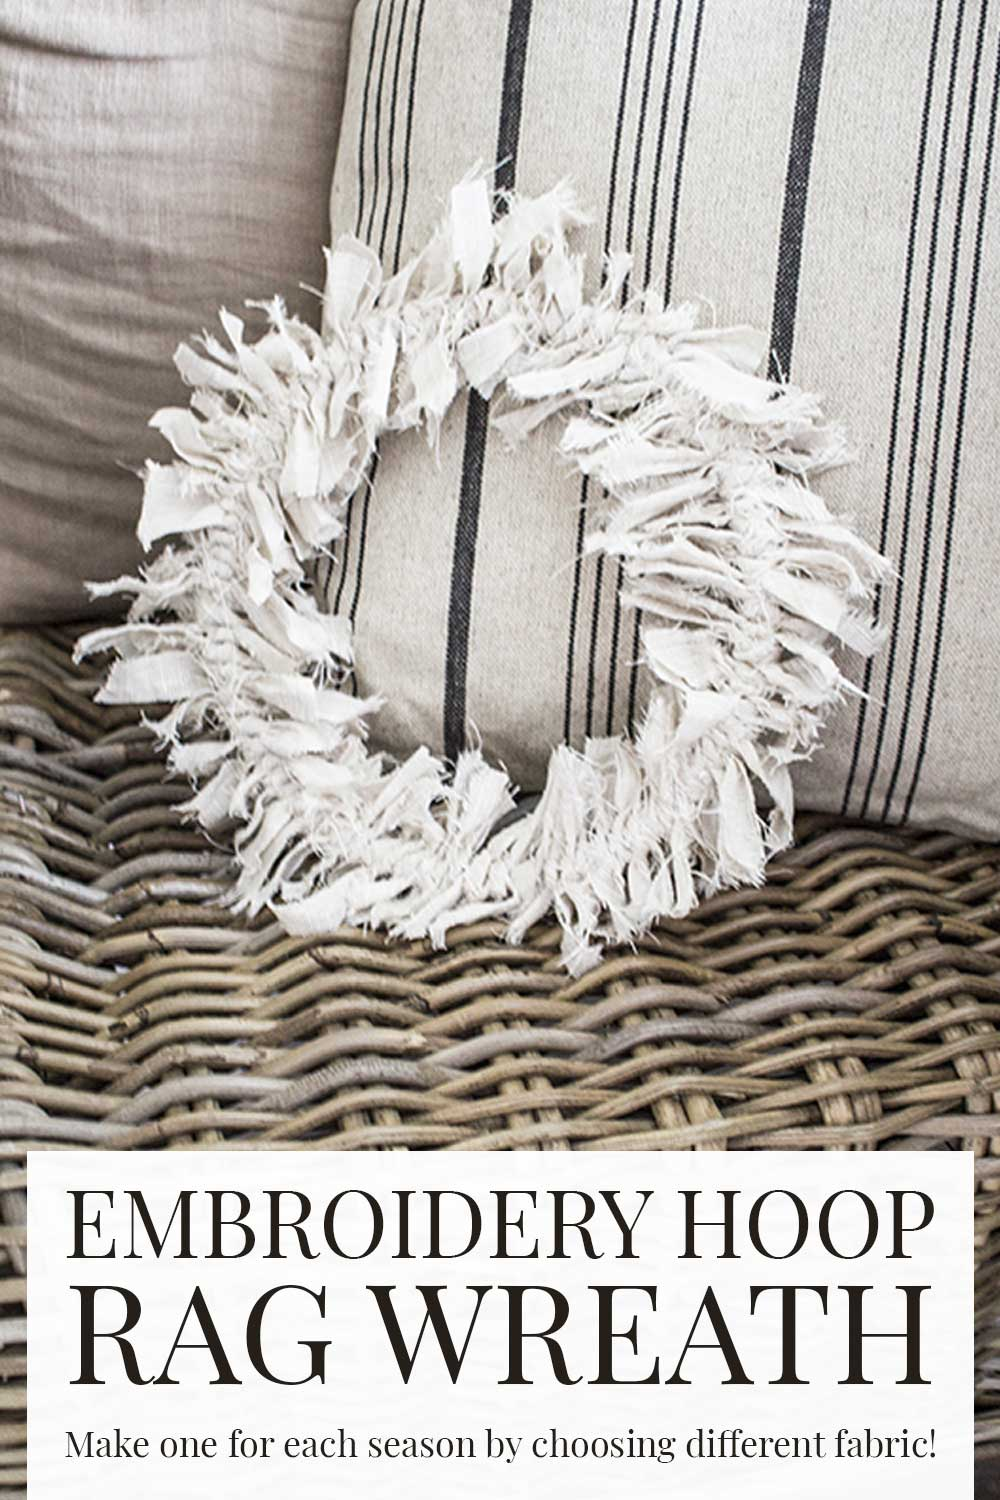 beige rag wreath propped on chair